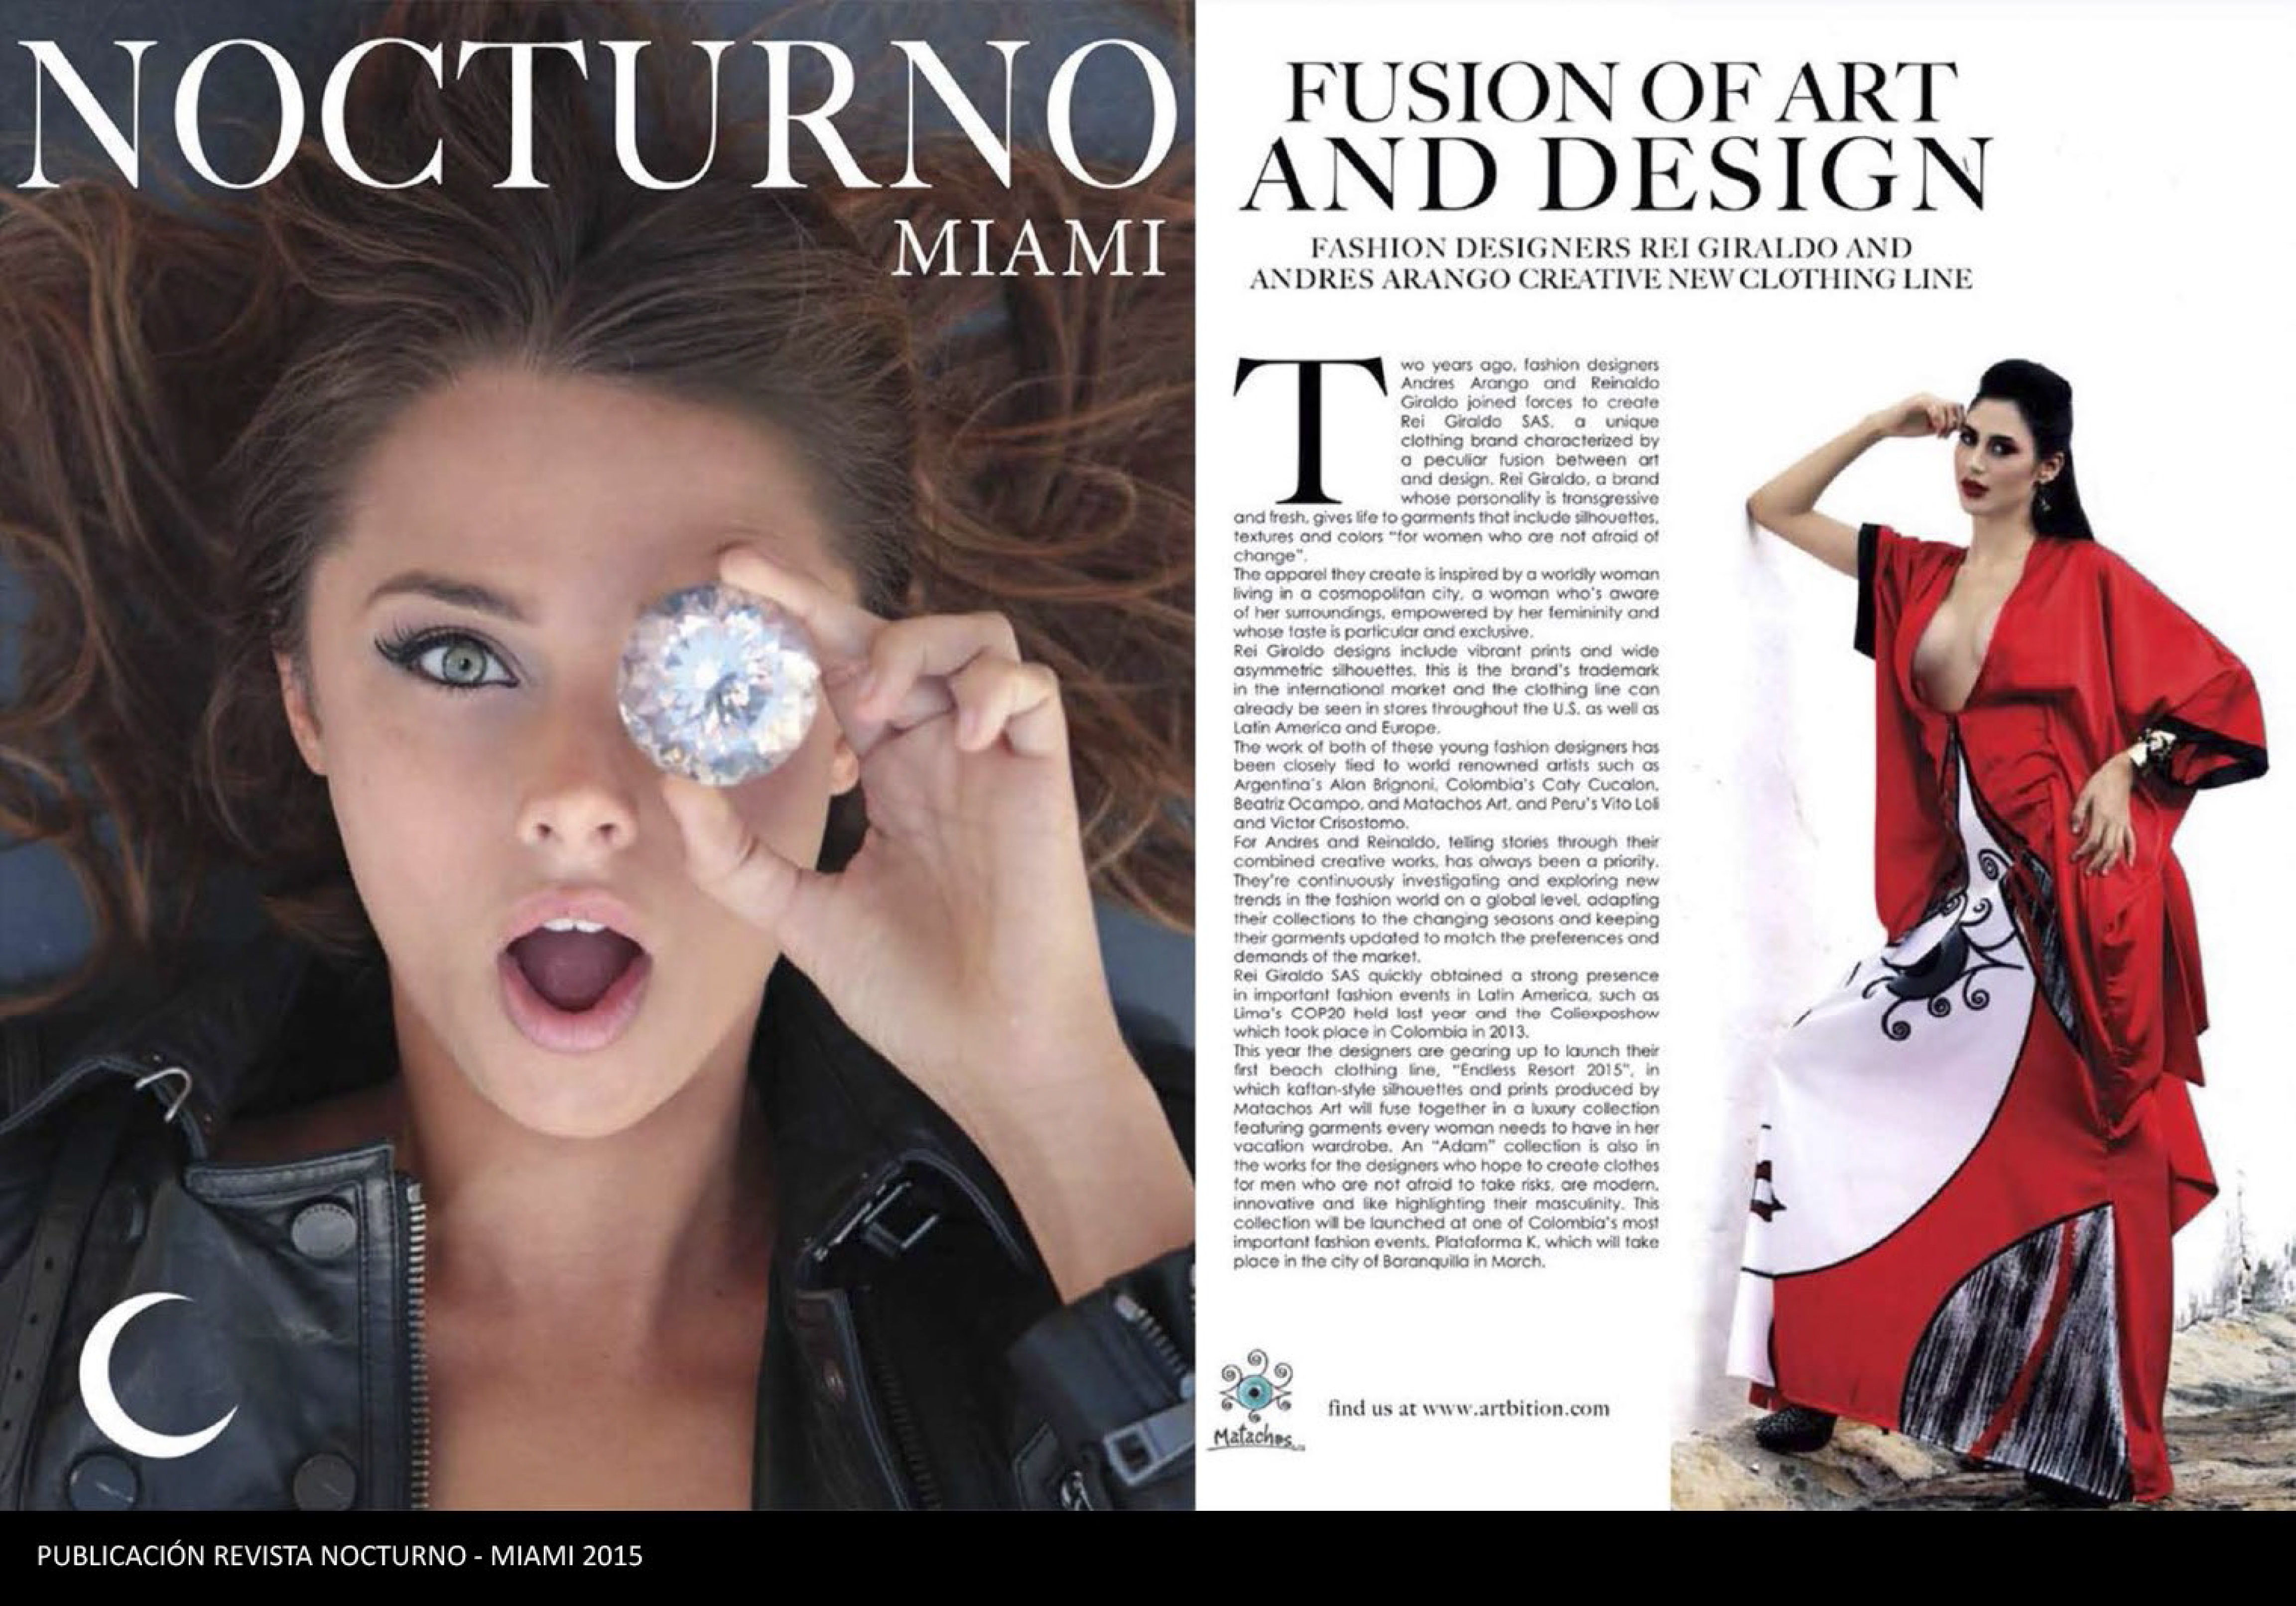 NOCTURNO_FLORIDA_REI_GIRALDO_PRESS_PRENSA